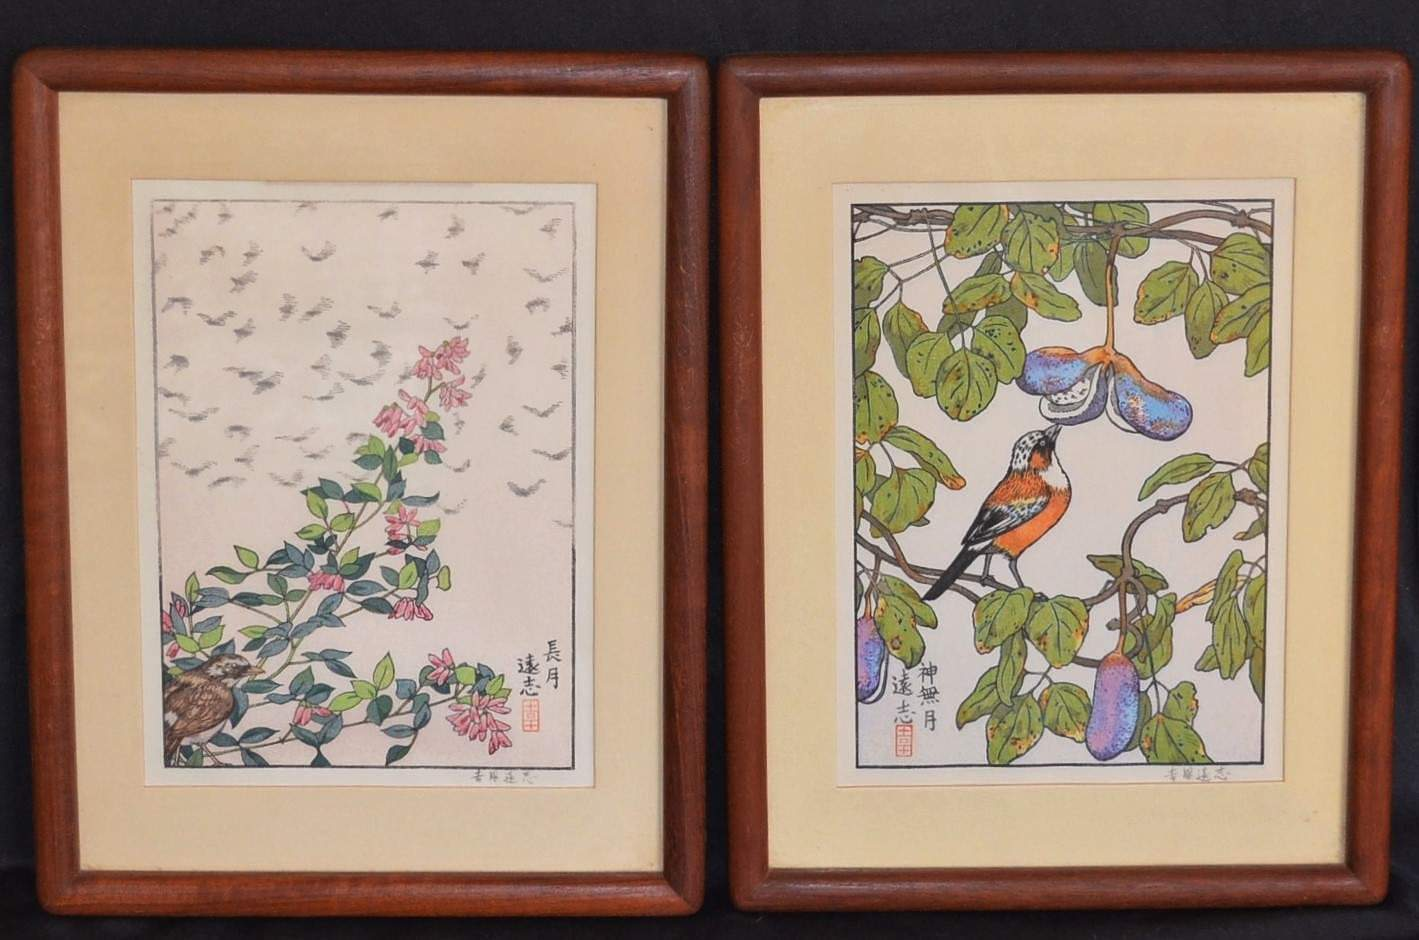 TOSHI YOSHIDA: THE FLOWERS AND BIRDS OF THE ORIENTAL YEAR - September / October